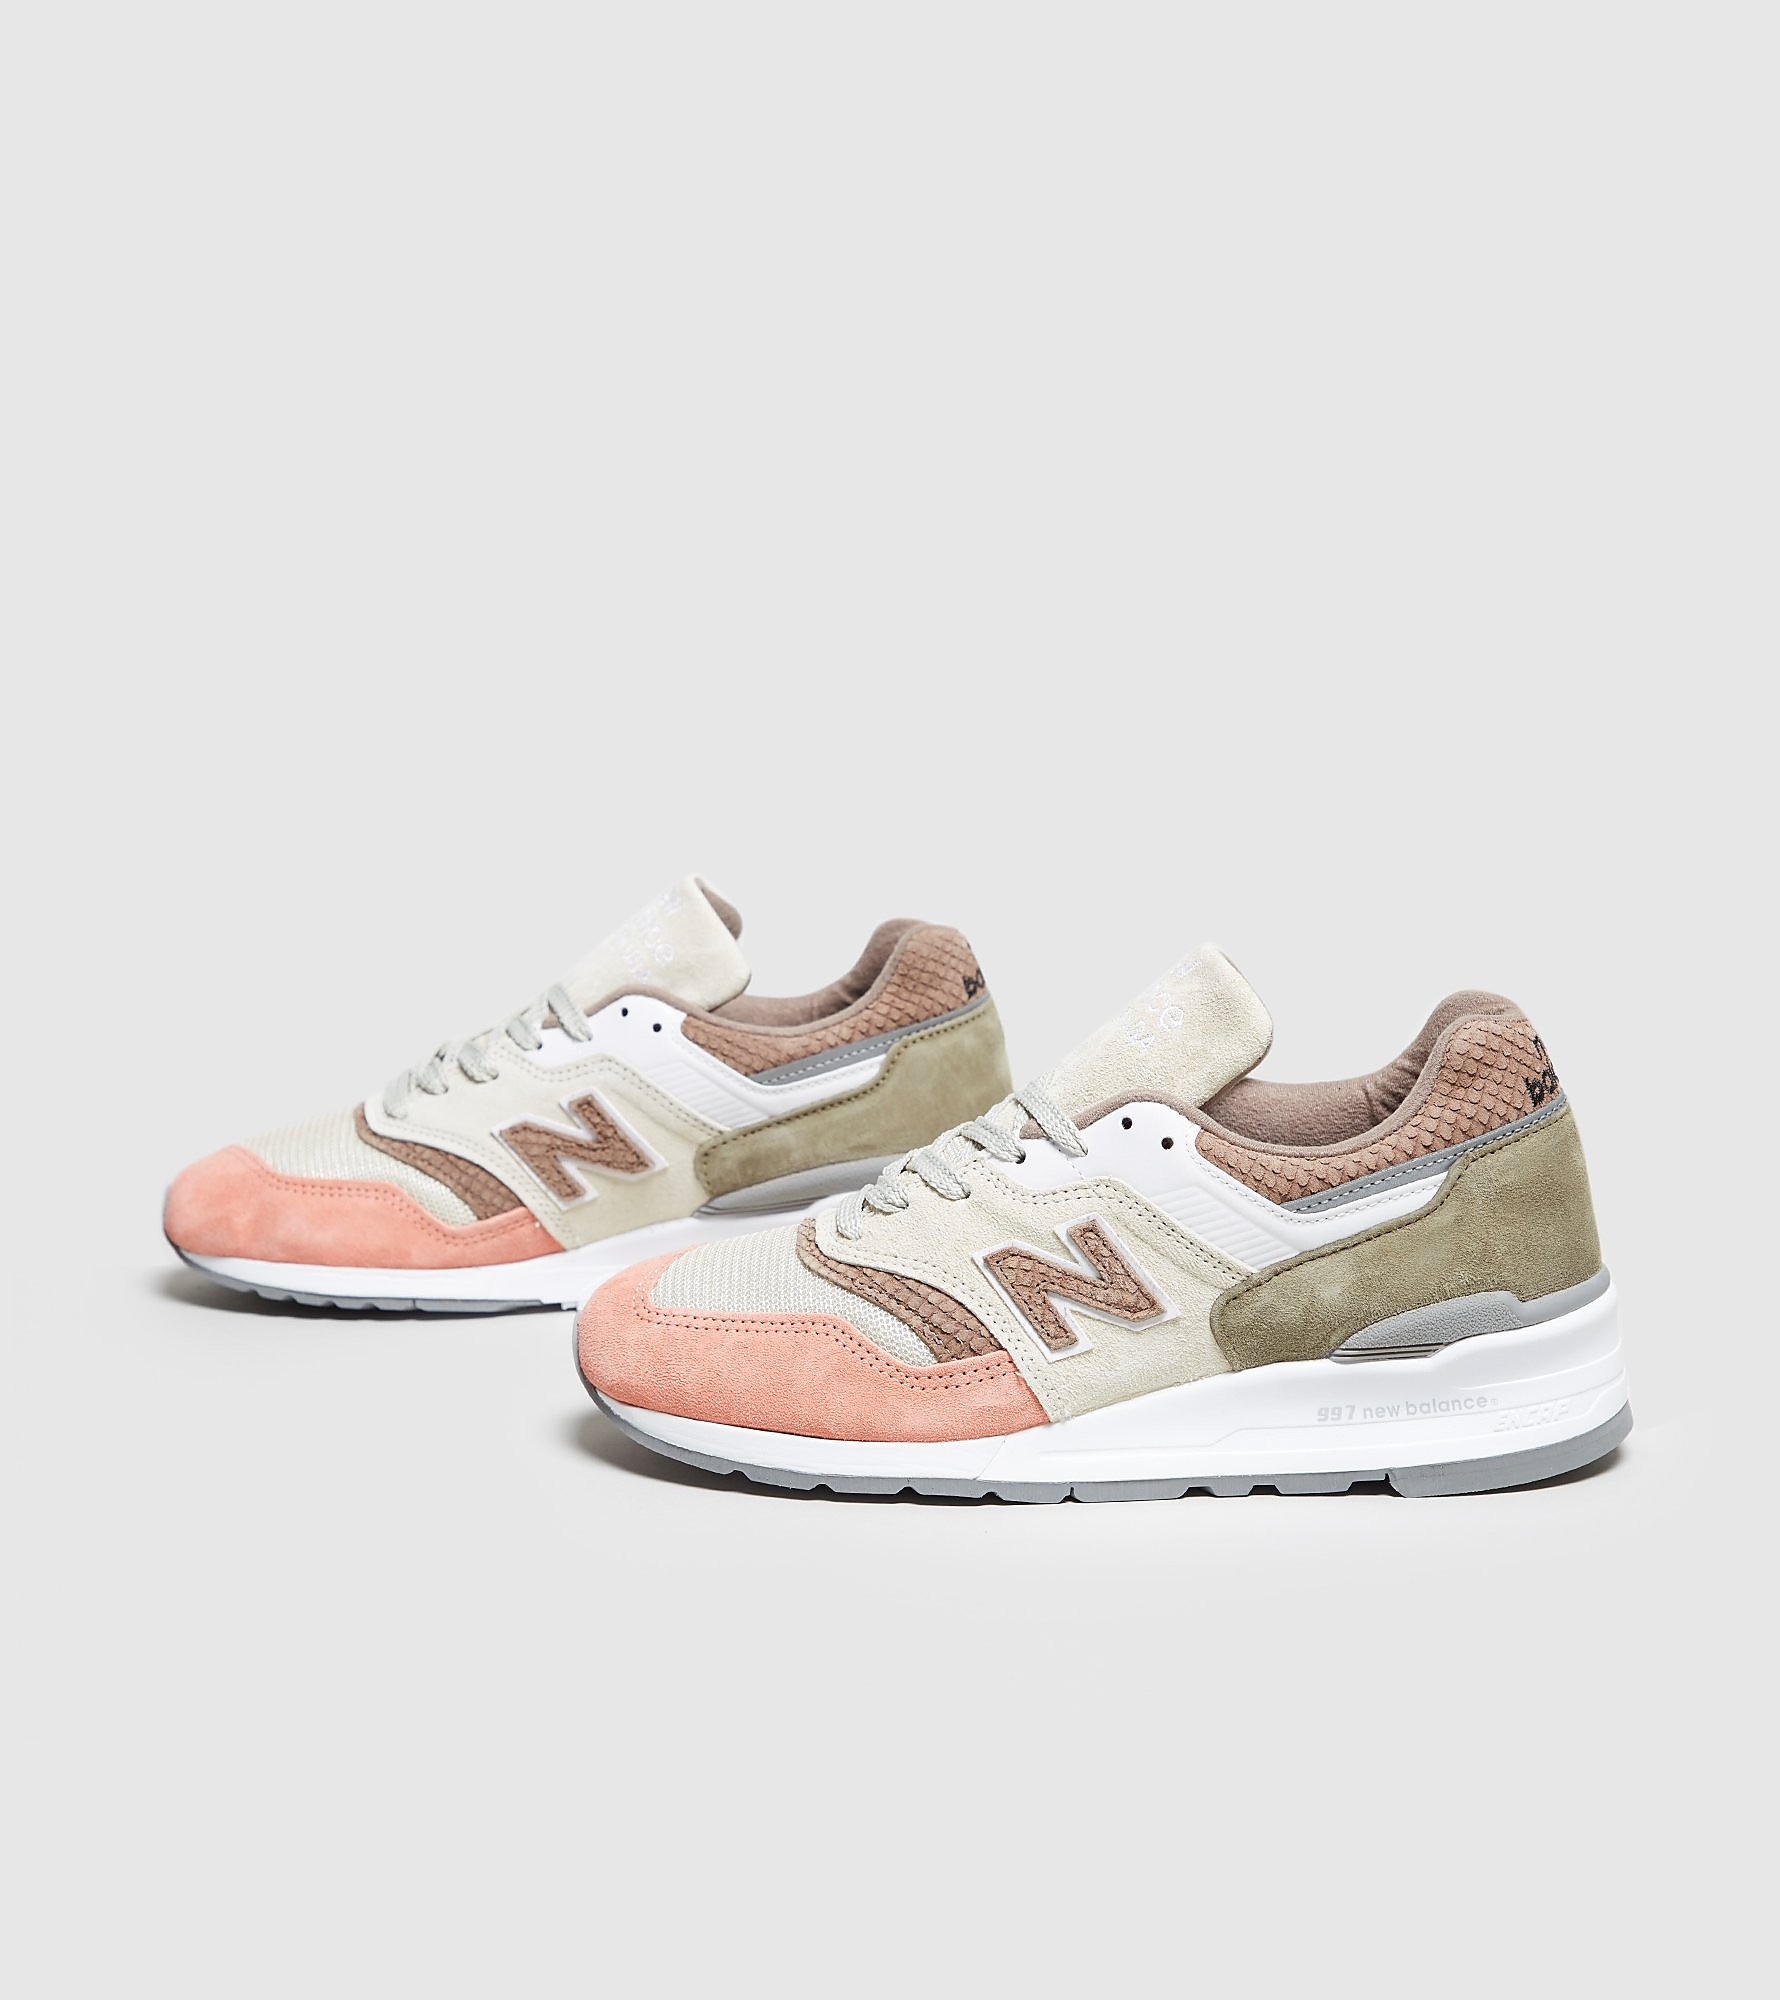 New Balance 997 USA Desert Heat